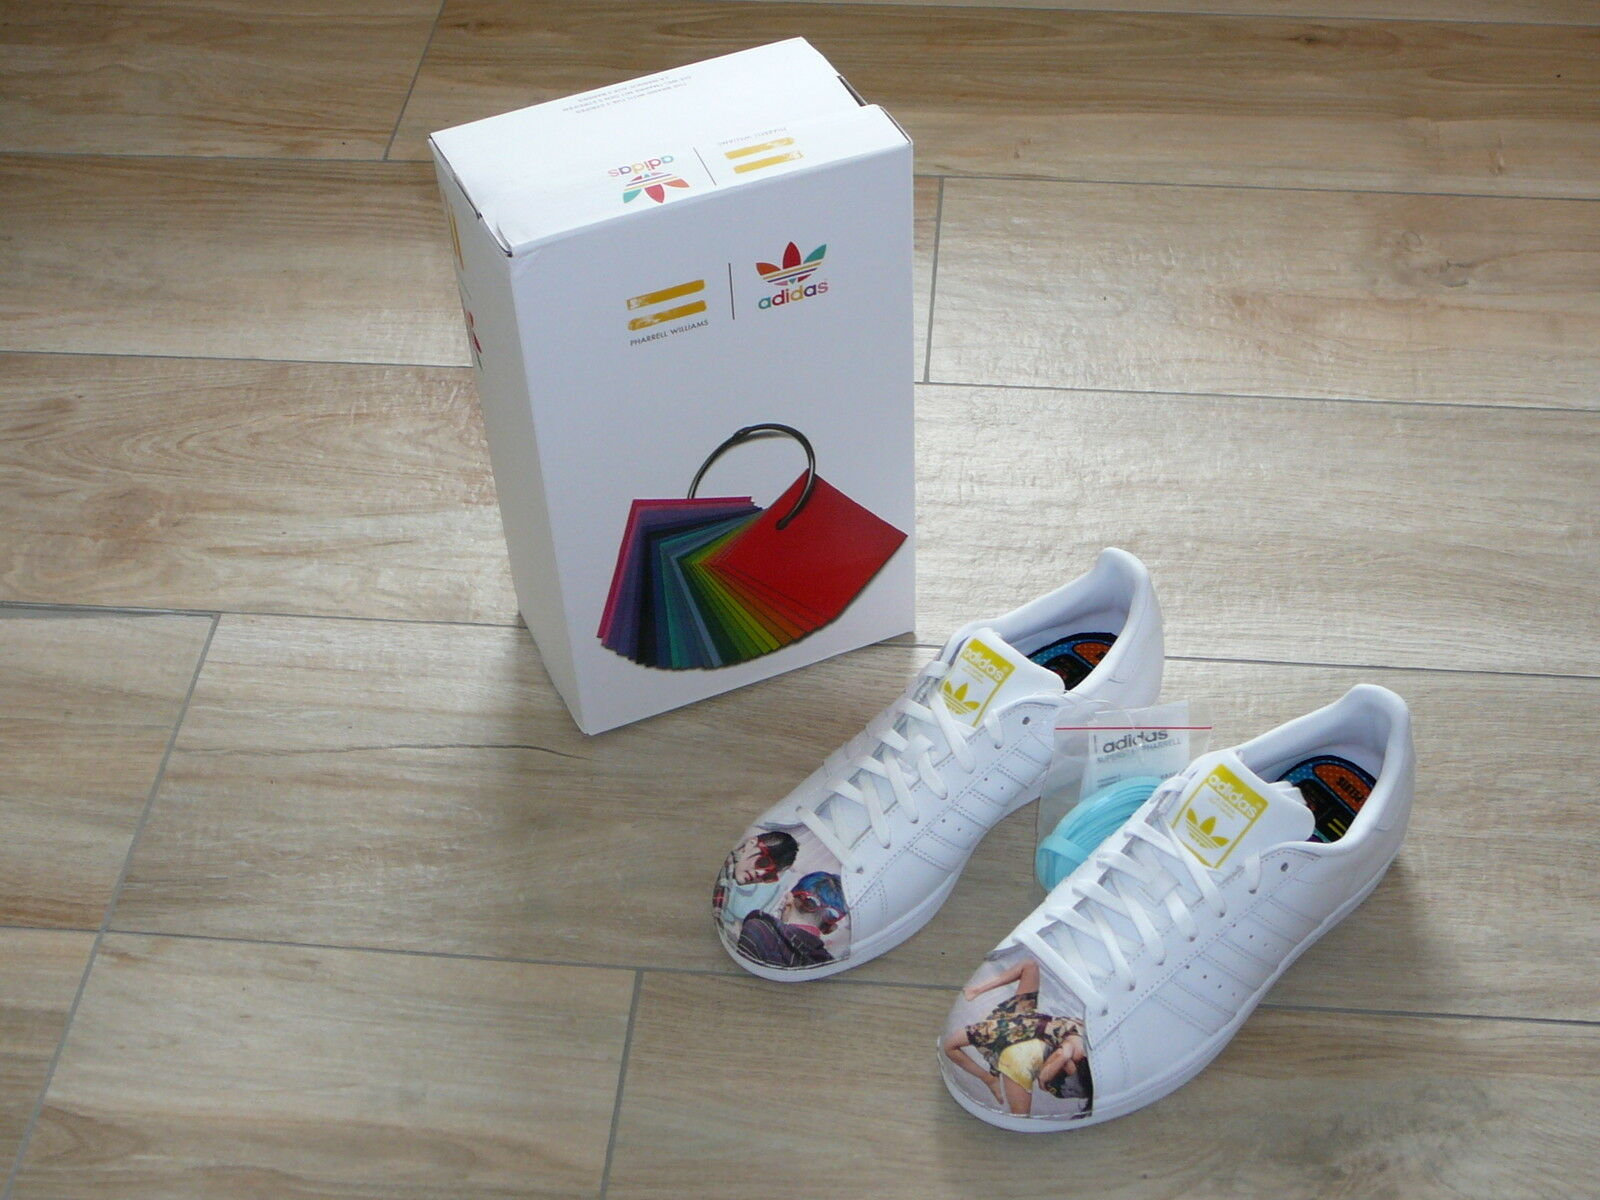 Adidas Superstar Superstar Adidas s83363 Originals Pharrell Williams cortos s83363 57e886